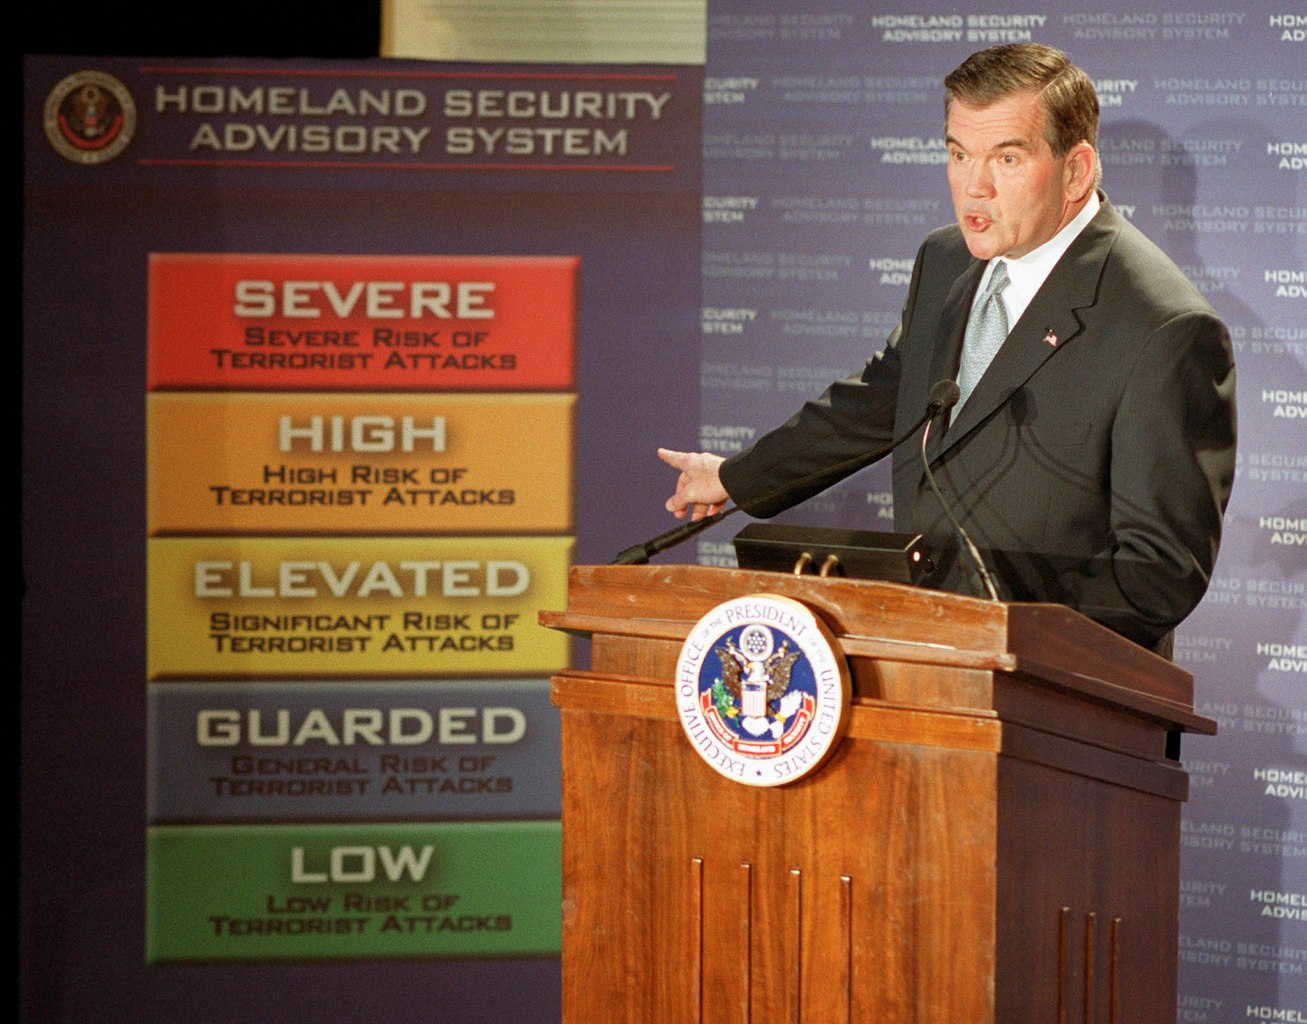 WASHINGTON, : Homeland Security Chief Tom Ridge points to a new color-coded US threat advisory system 12 March, 2002 in Washington, DC, which will allow the government and the private sector to deal effectively with threats of terrorist attack. The warning system has five levels starting with green, the lowest alert level, followed by blue, then yellow, orange and red, the highest state of alert. Each code will trigger specific actions by federal agencies and state and local governments. AFP PHOTO/JOSHUA ROBERTS (Photo credit should read JOSHUA ROBERTS/AFP/Getty Images)